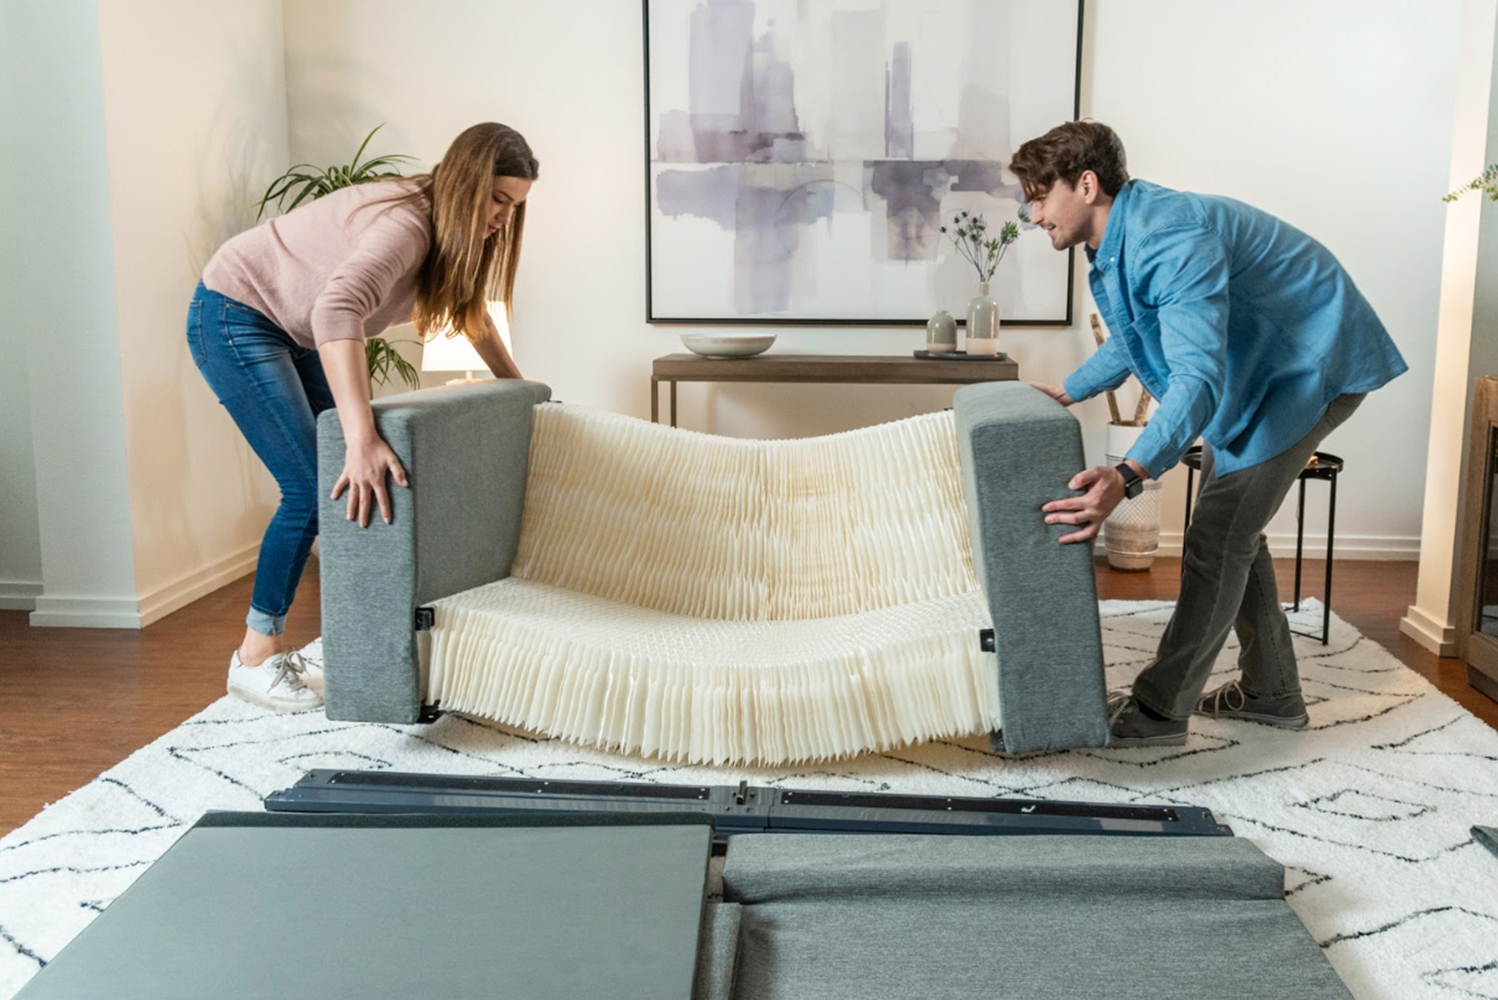 This sofa collapses into one box that can be shipped via UPS or transported by car.